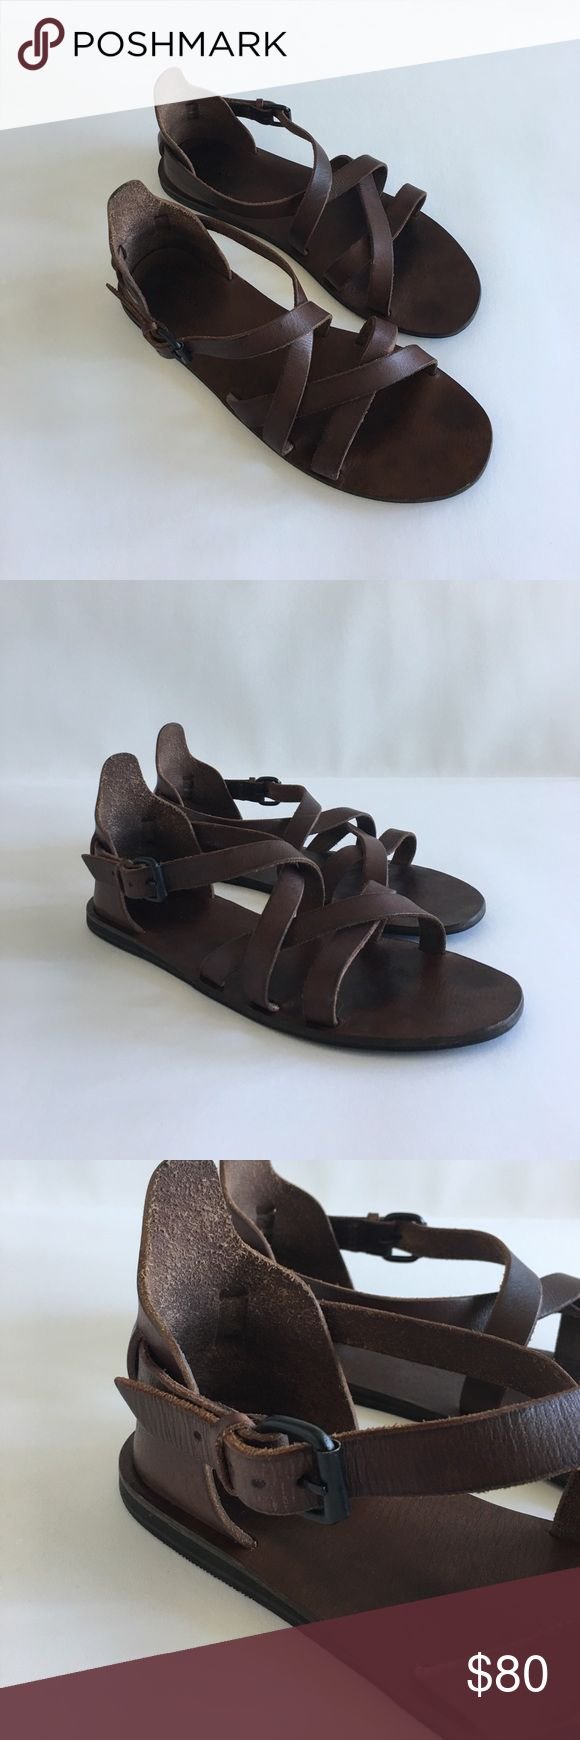 All Saints Men's brown Leather Shaw Sandal size 11 All Saints Men's brown Leather Shaw Sandal size 11 - good condition. Worn and have some signs of some wear. In box. Good condition. Leather is great conditions. All Saints Shoes Sandals & Flip-Flops